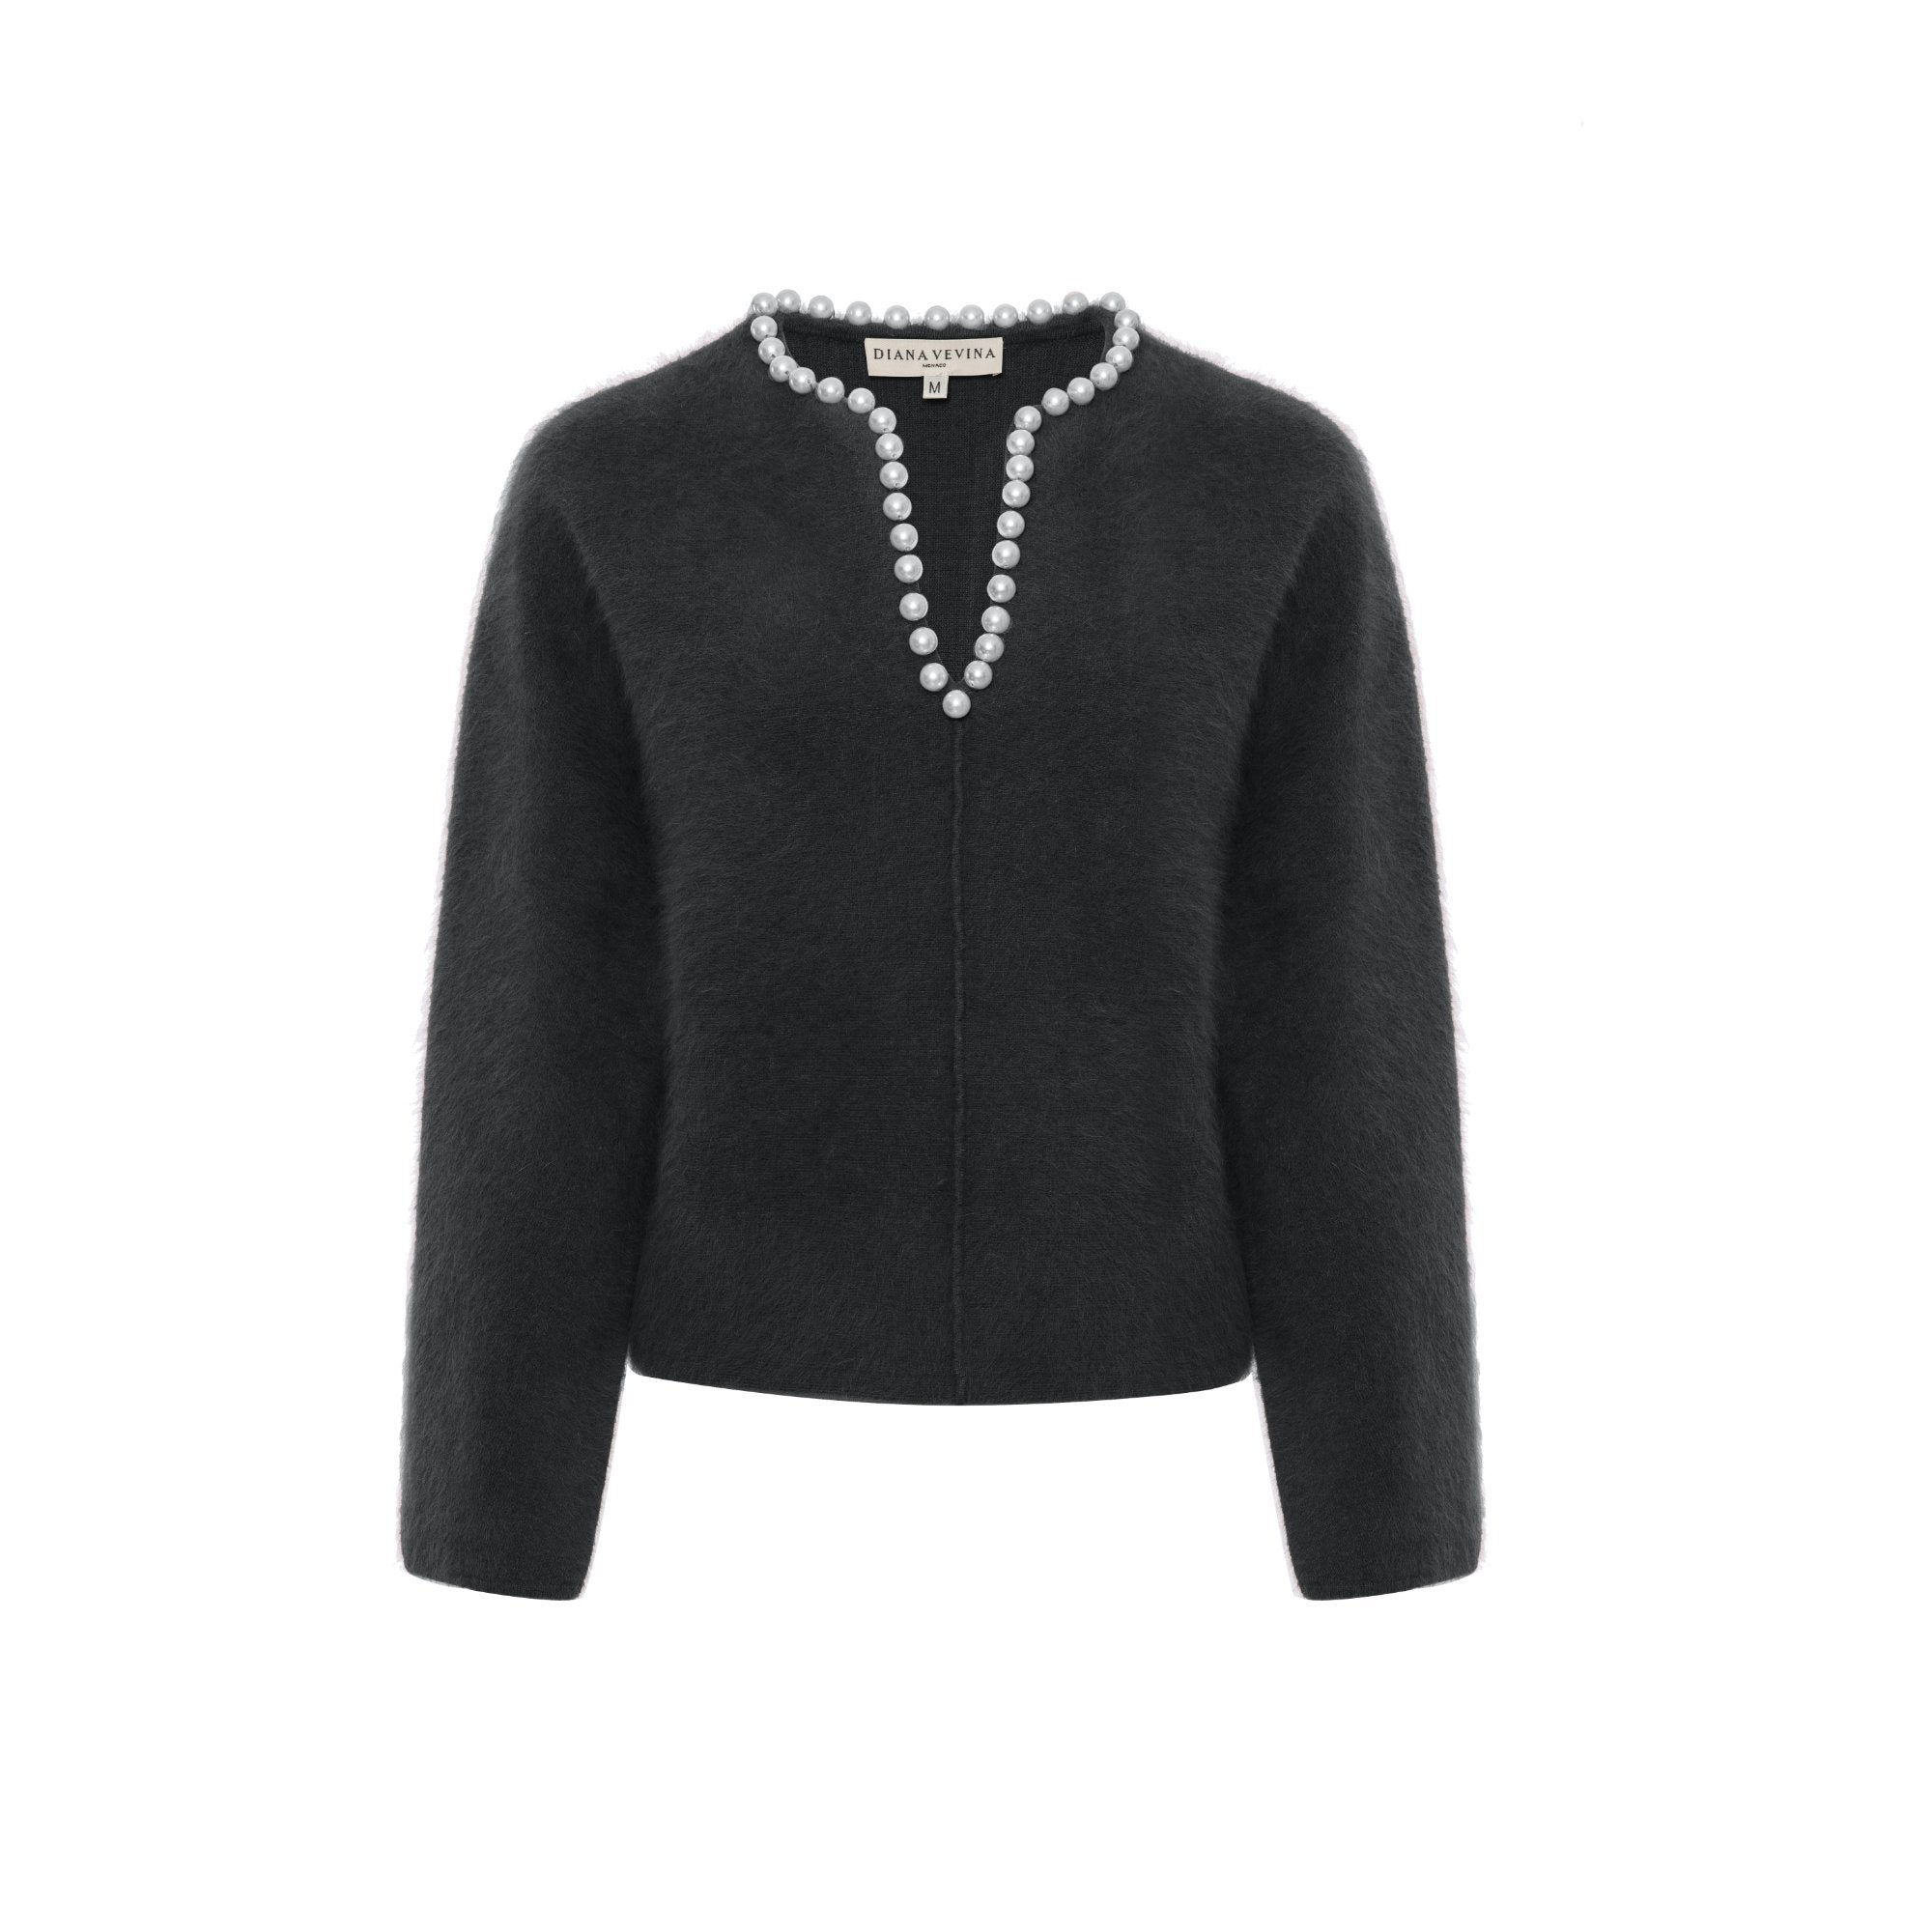 DIANA VEVINA Black Pearl V-Neck Sweatshirt | MADA IN CHINA